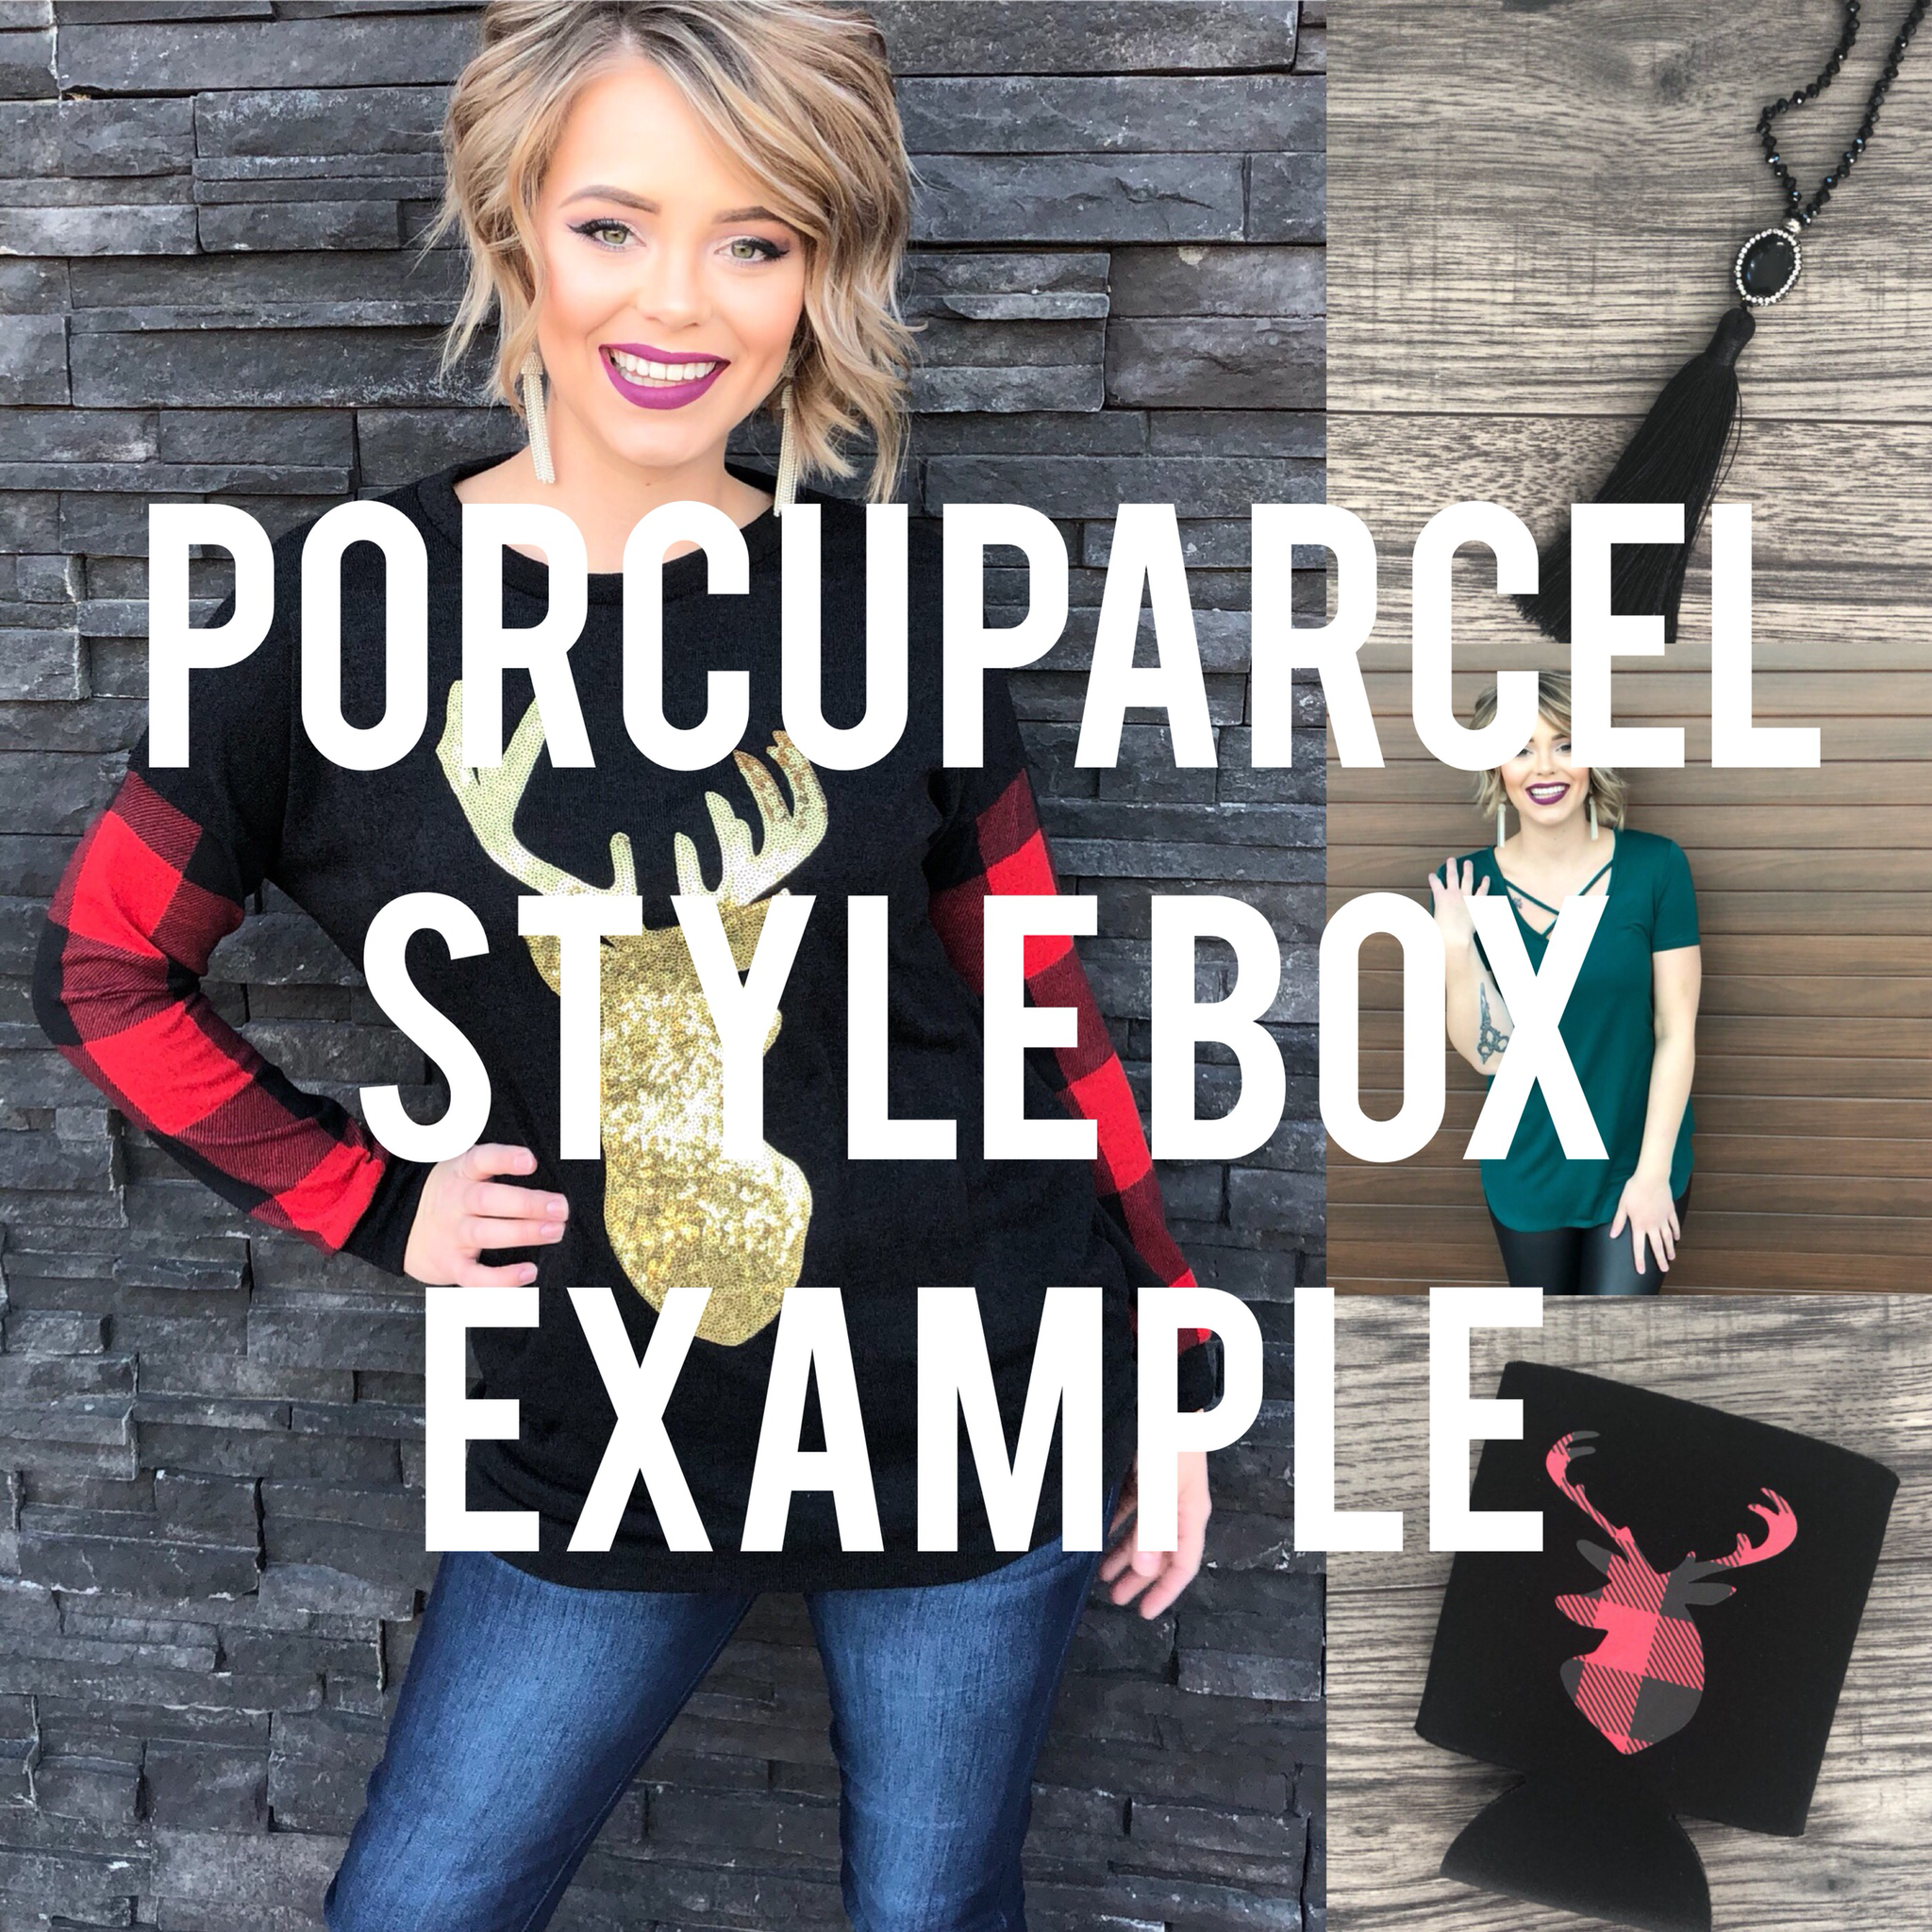 The Porcuparcel Accessories Easter Egg Box - April